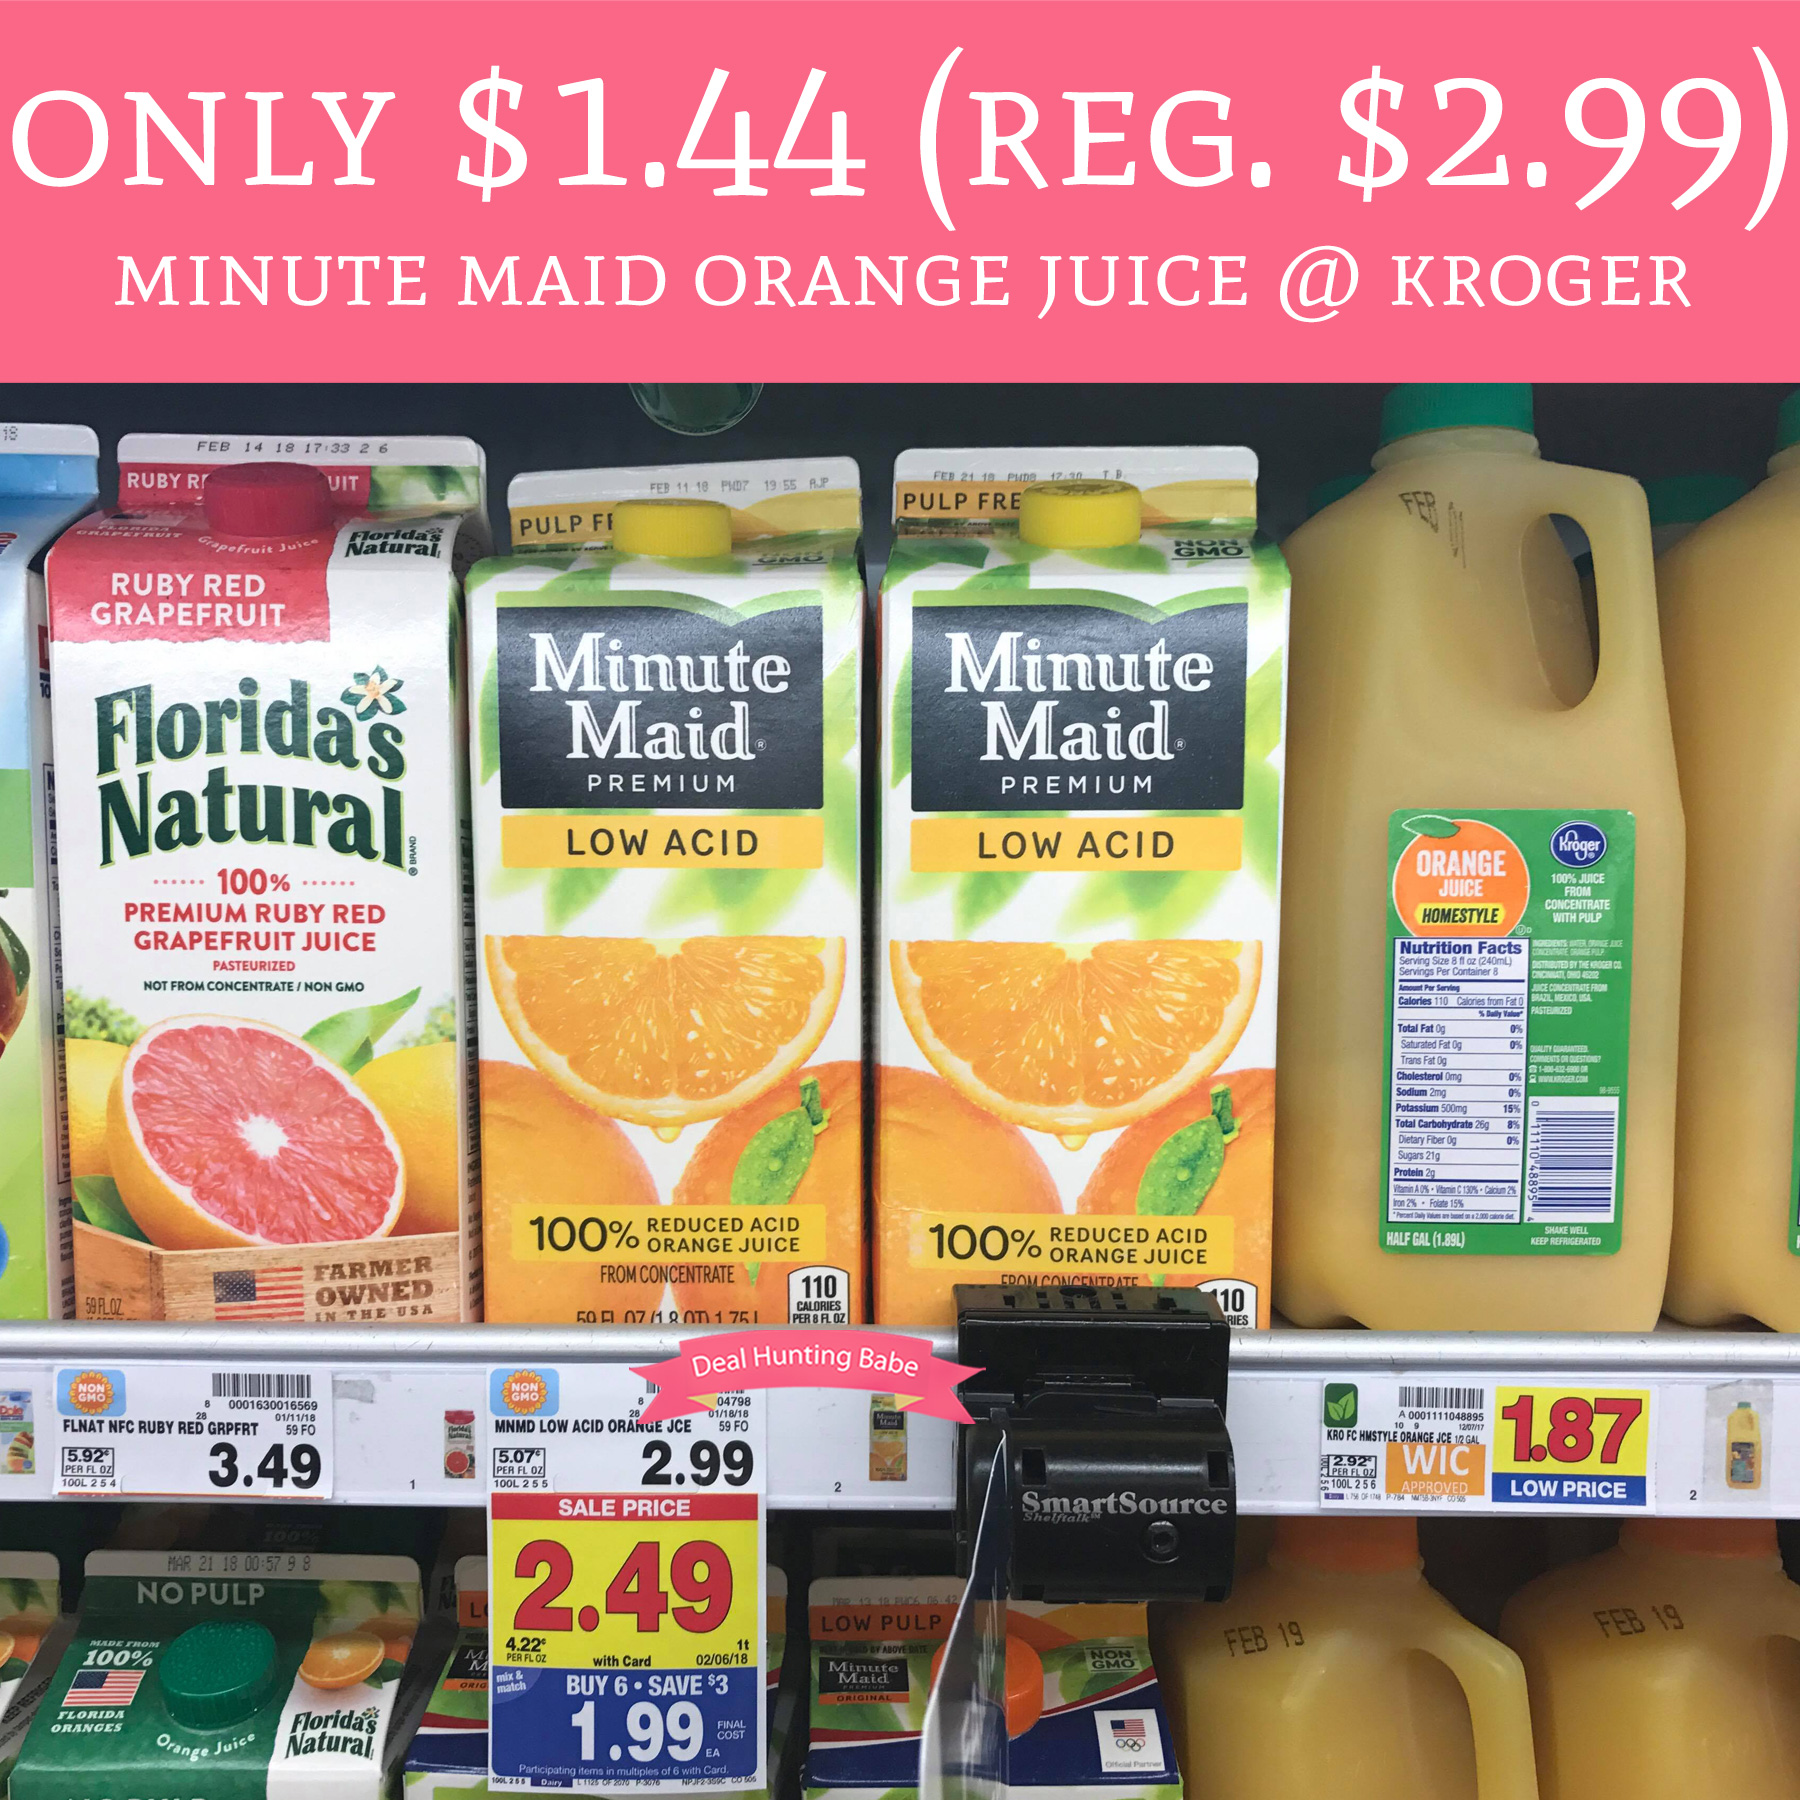 Coupon for minute maid orange juice printable